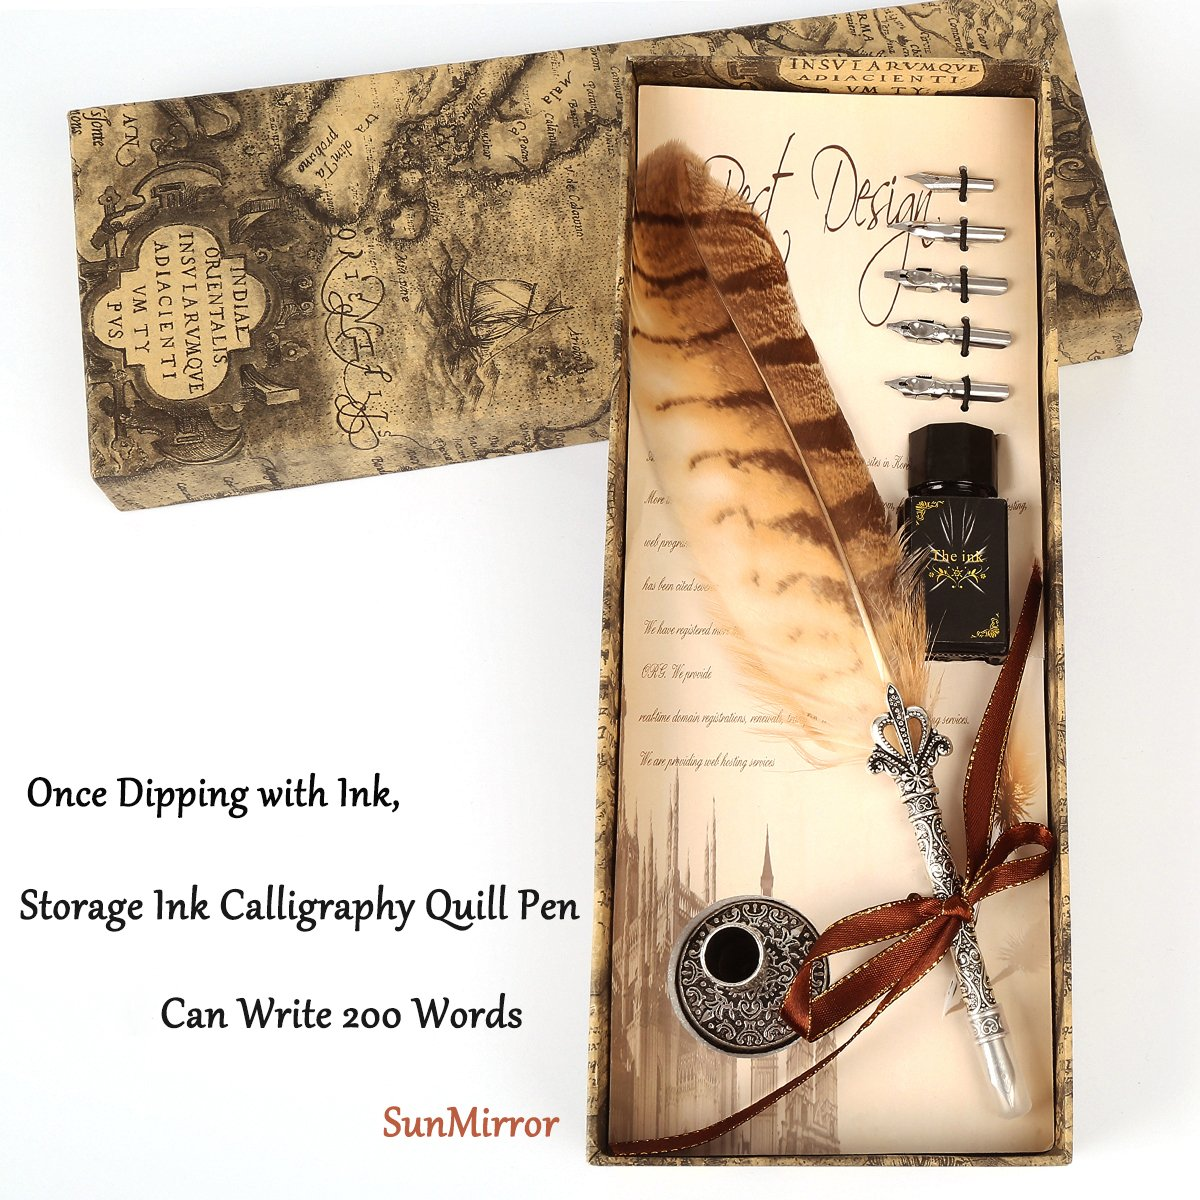 Calligraphy Quill Pen Ink Set, SunMirror Antique Feather Dip Pen Kit Writing Quill Storage Ink Dip Pen Gift Set (Owl)